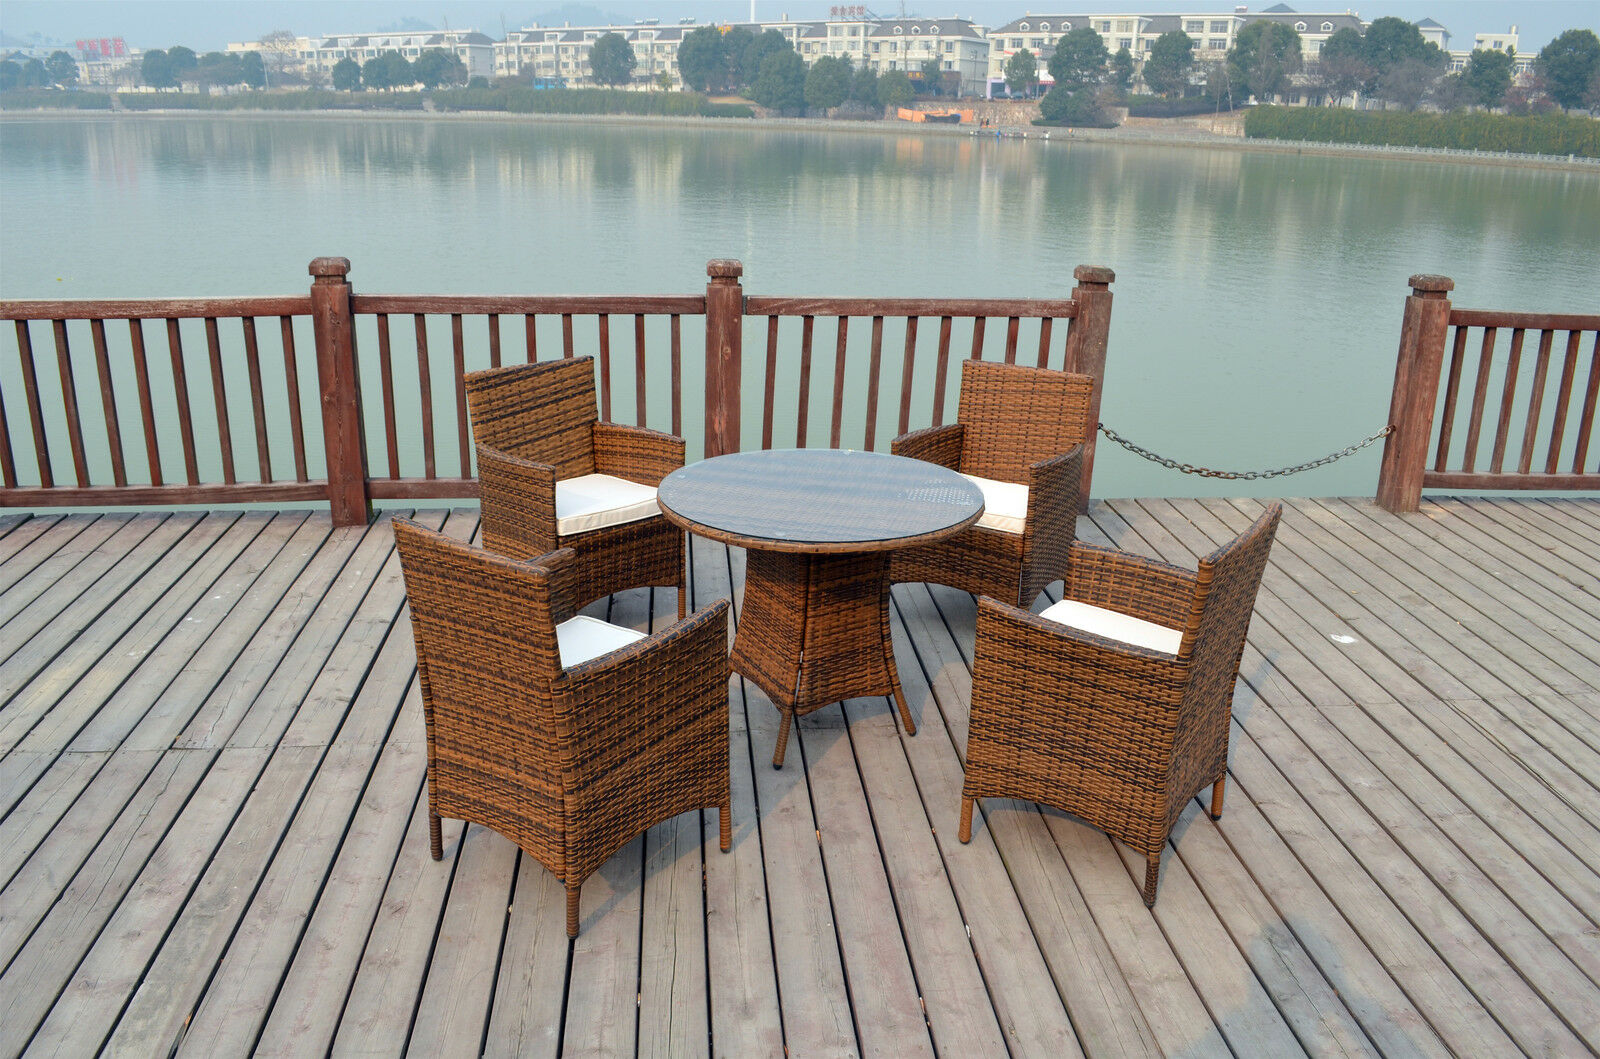 bistro garden rattan wicker outdoor dining furniture set table chairs